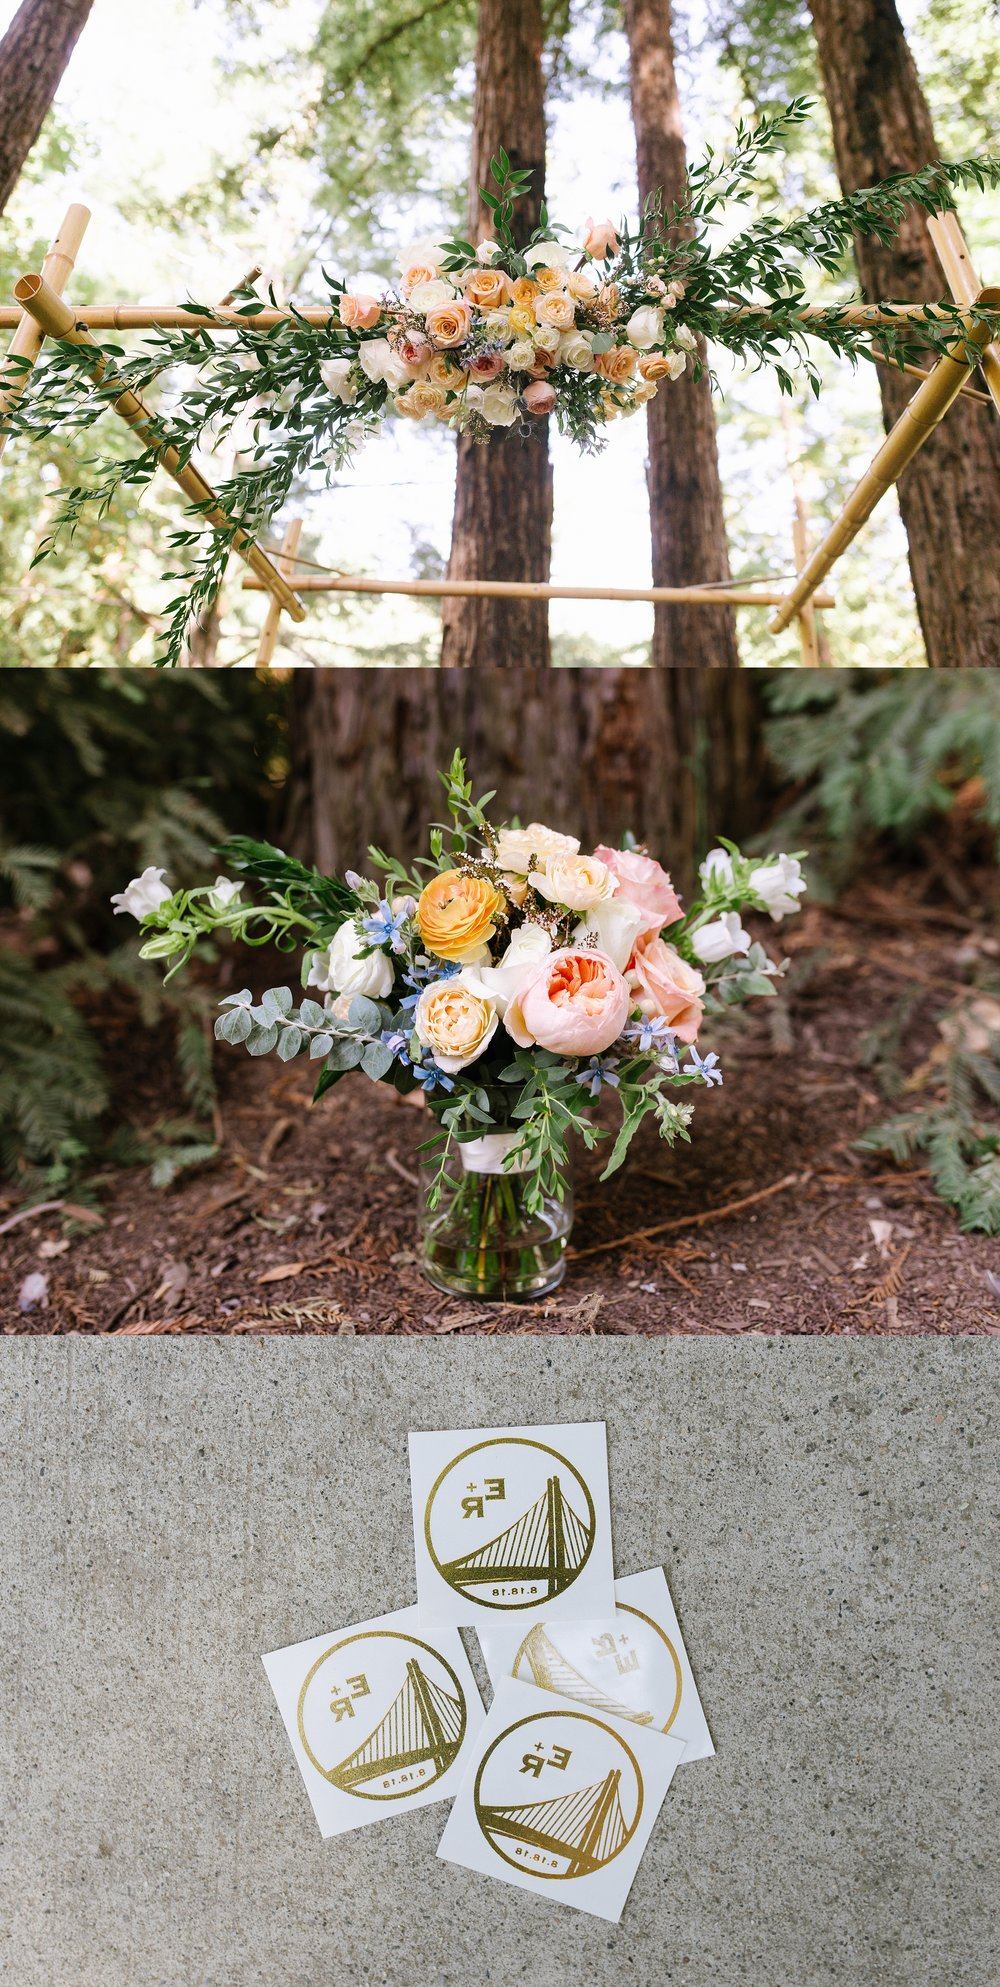 Amphitheatre-of-the-Redwoods-wedding-erikariley_chelsea-dier-photography_0004.jpg